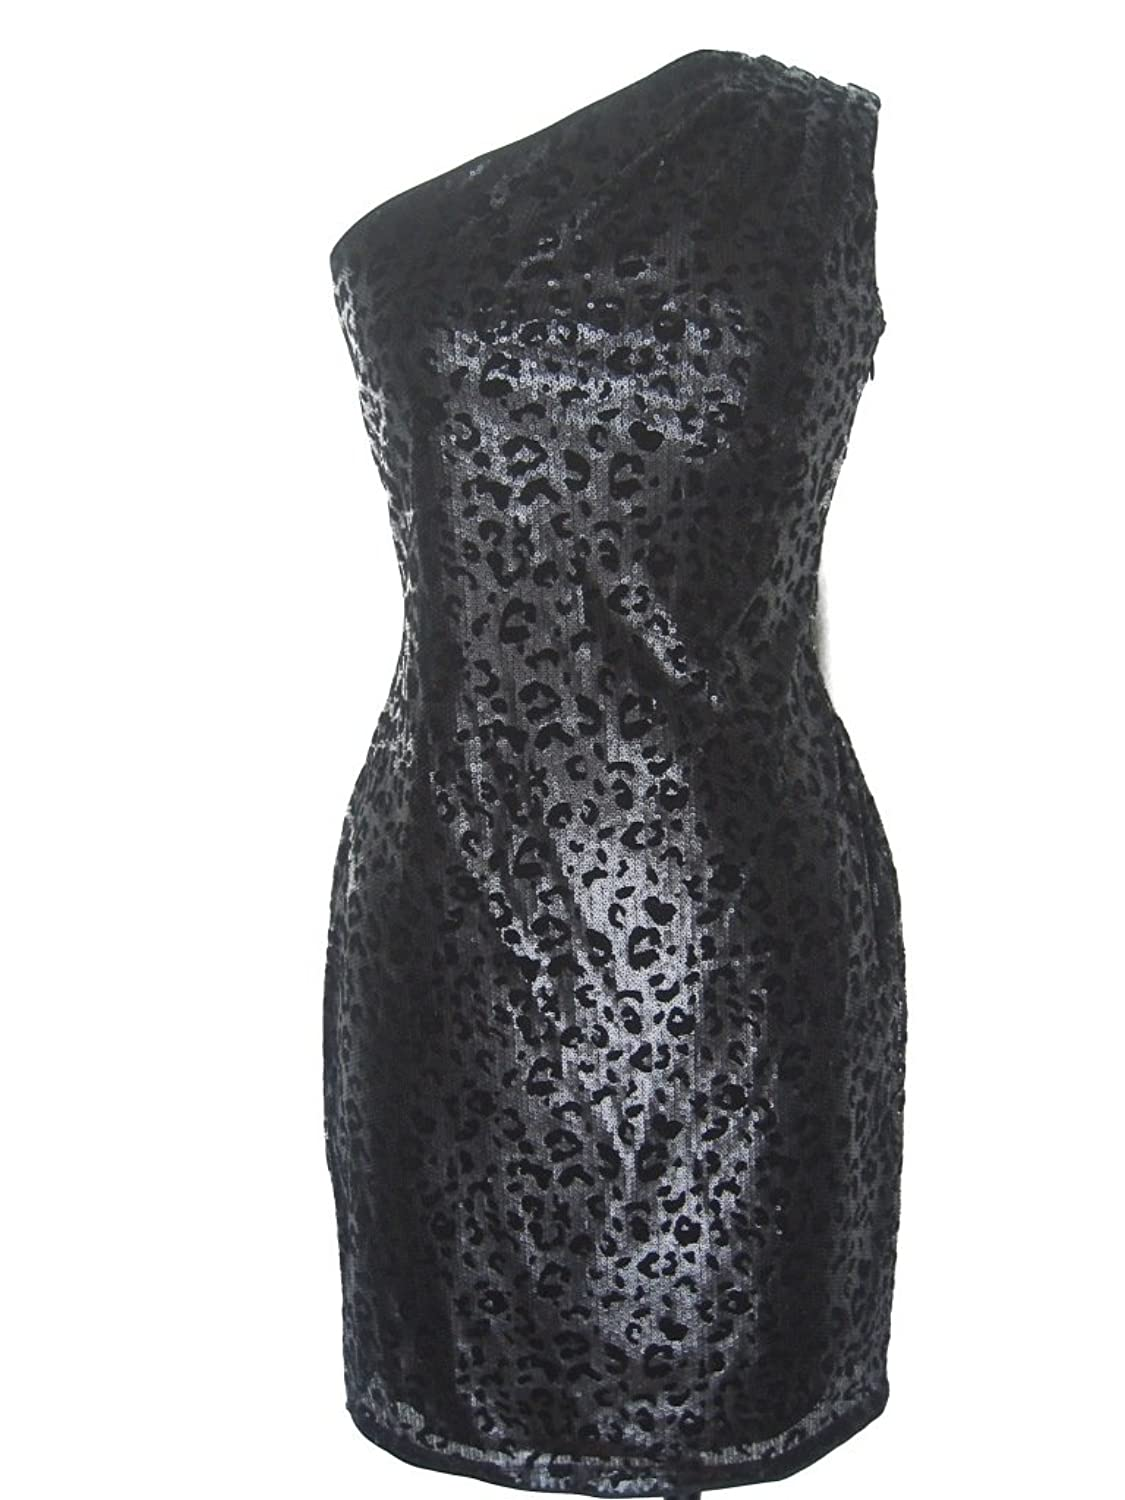 Miss Sixty Women's Leopard Pattern Sequined Sheath Dress блуза miss sixty xj7531 fe9758 l0000h a00120